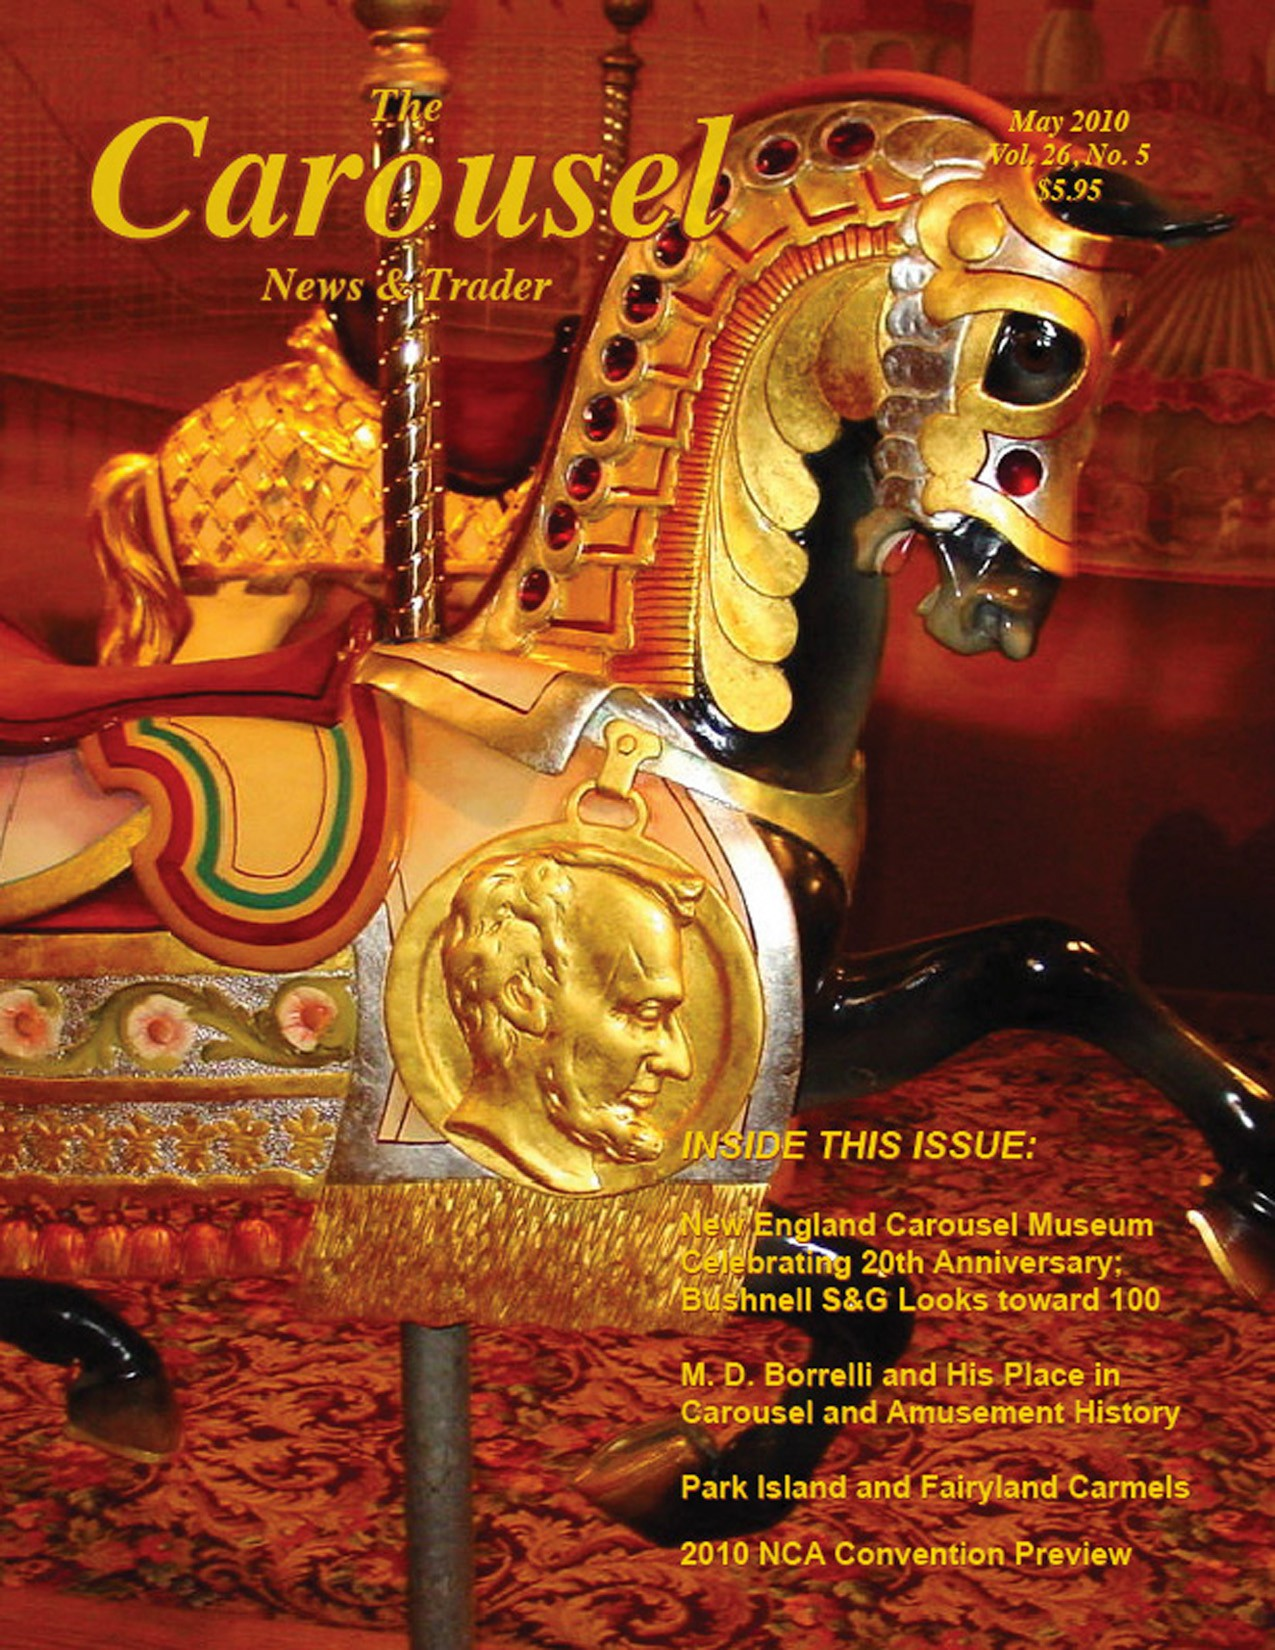 Issue No. 5, Vol. 26 – May 2010